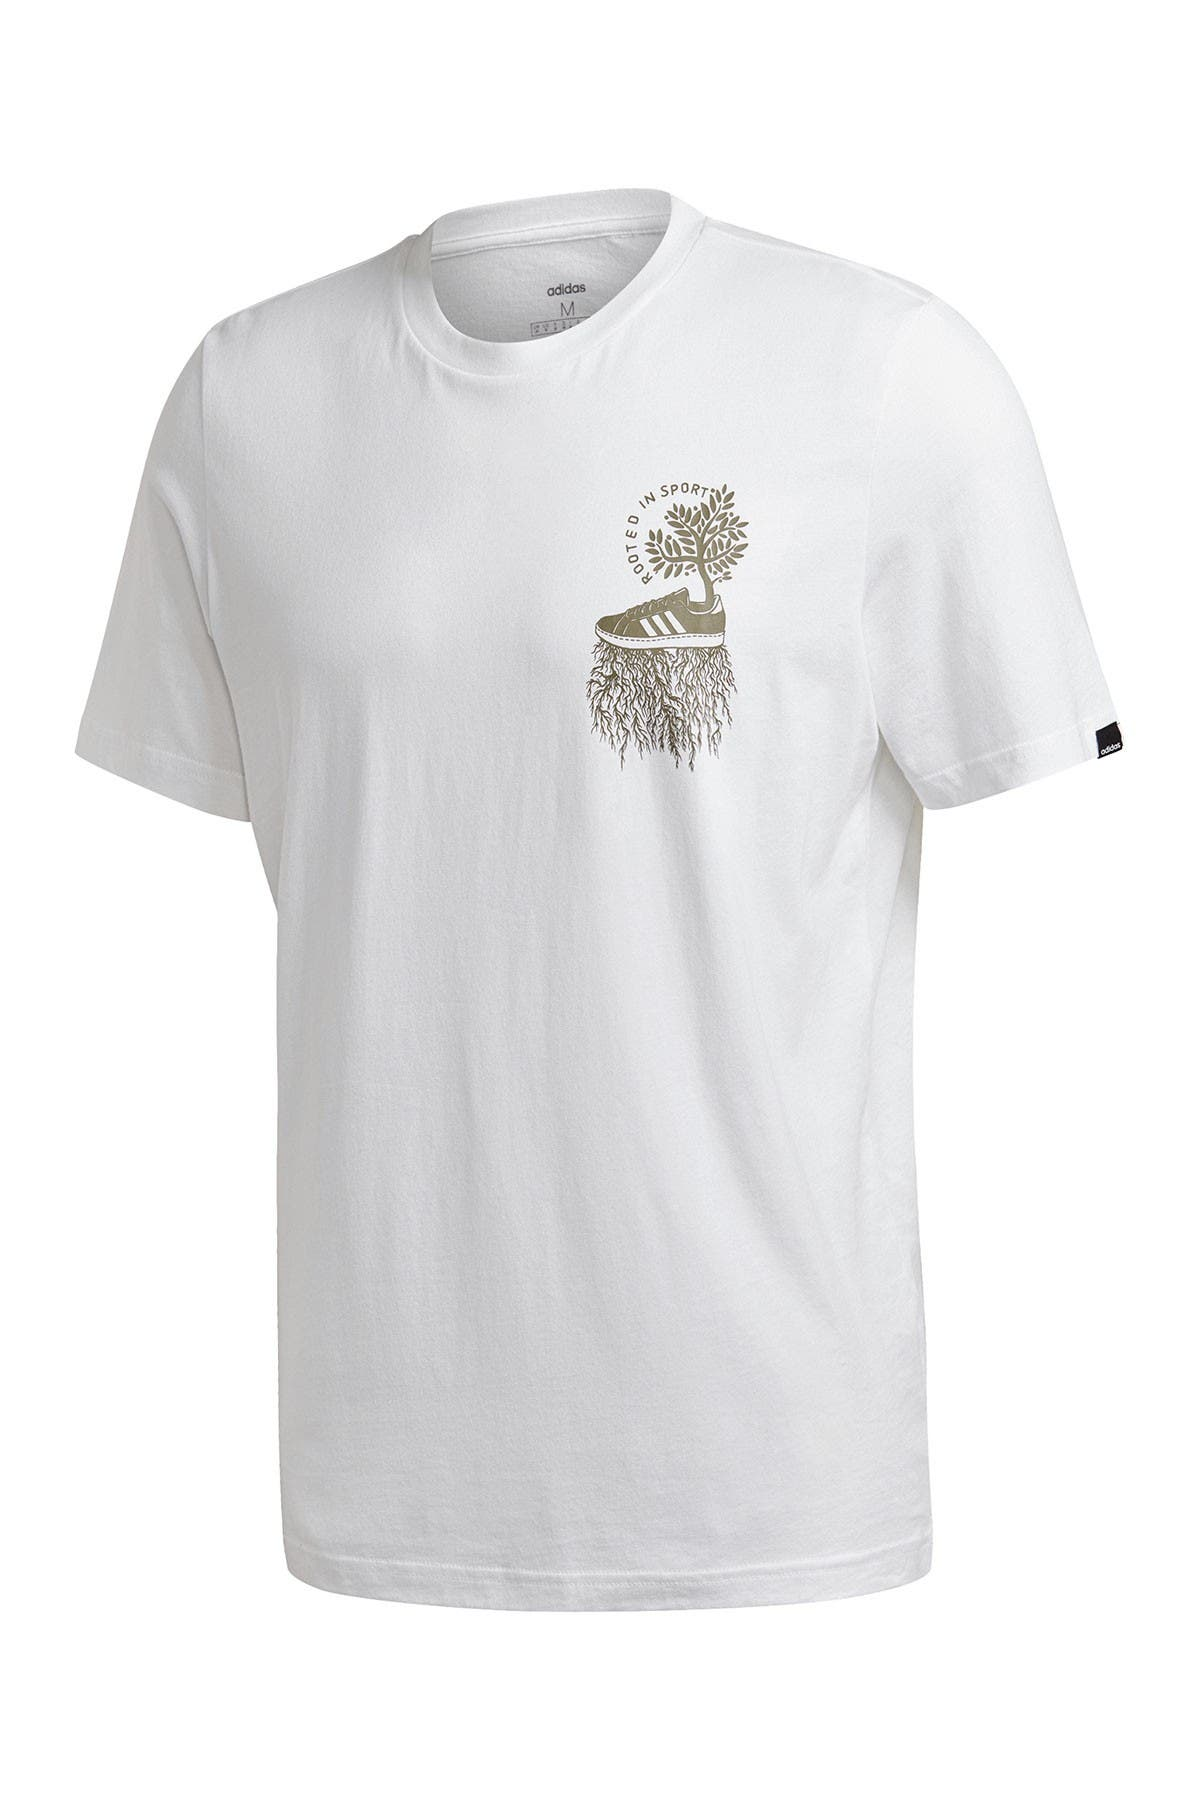 Image of adidas Rooted In Sport T-Shirt